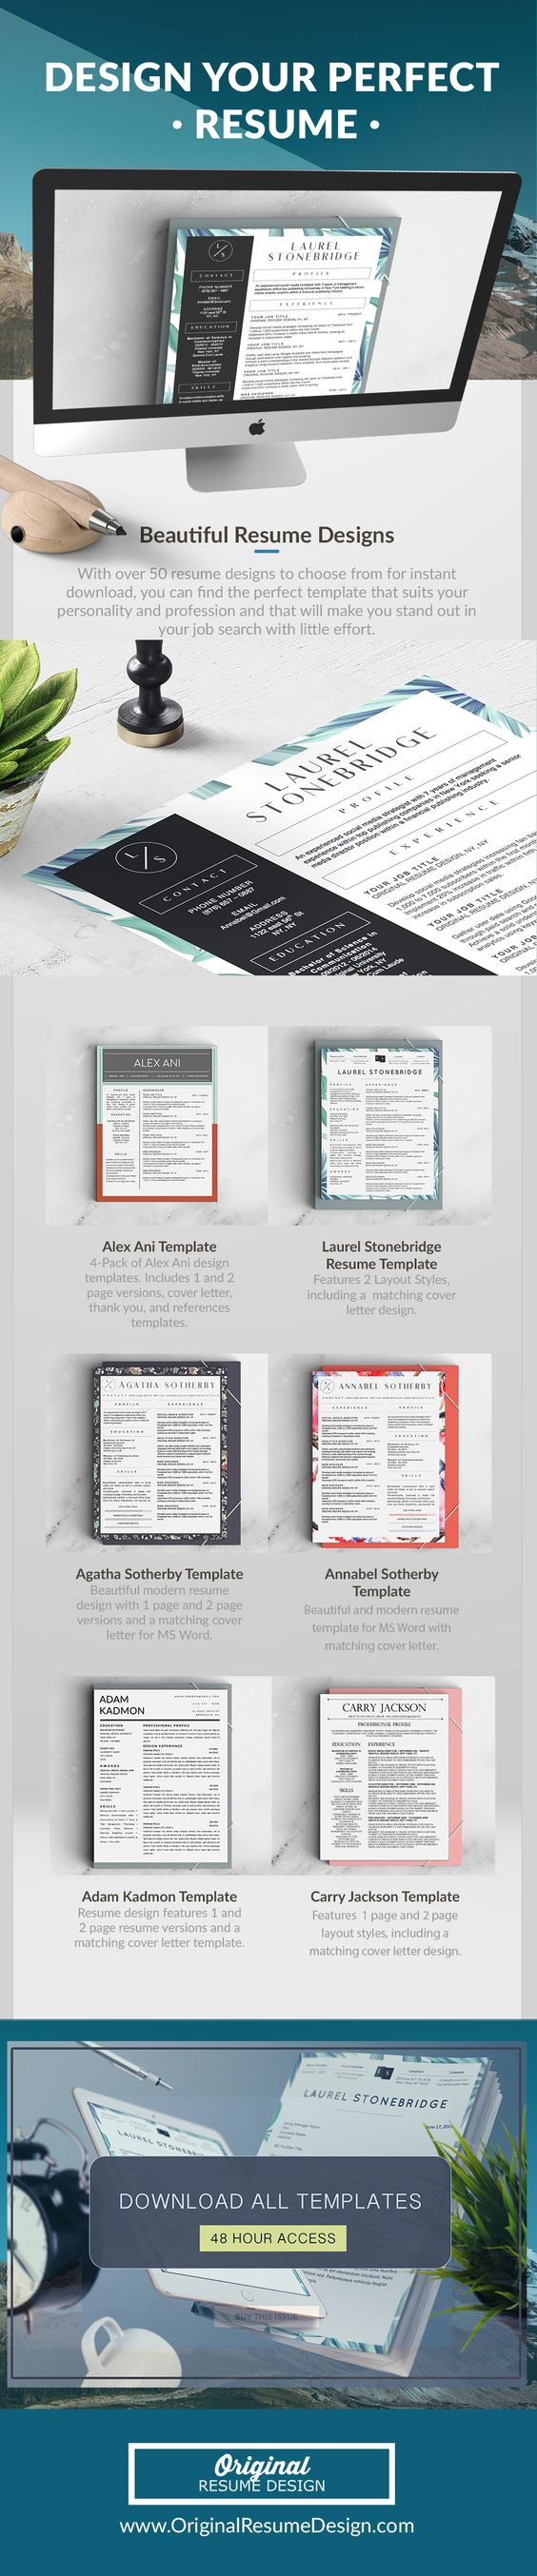 Resume, Resume design and Job search on Pinterest